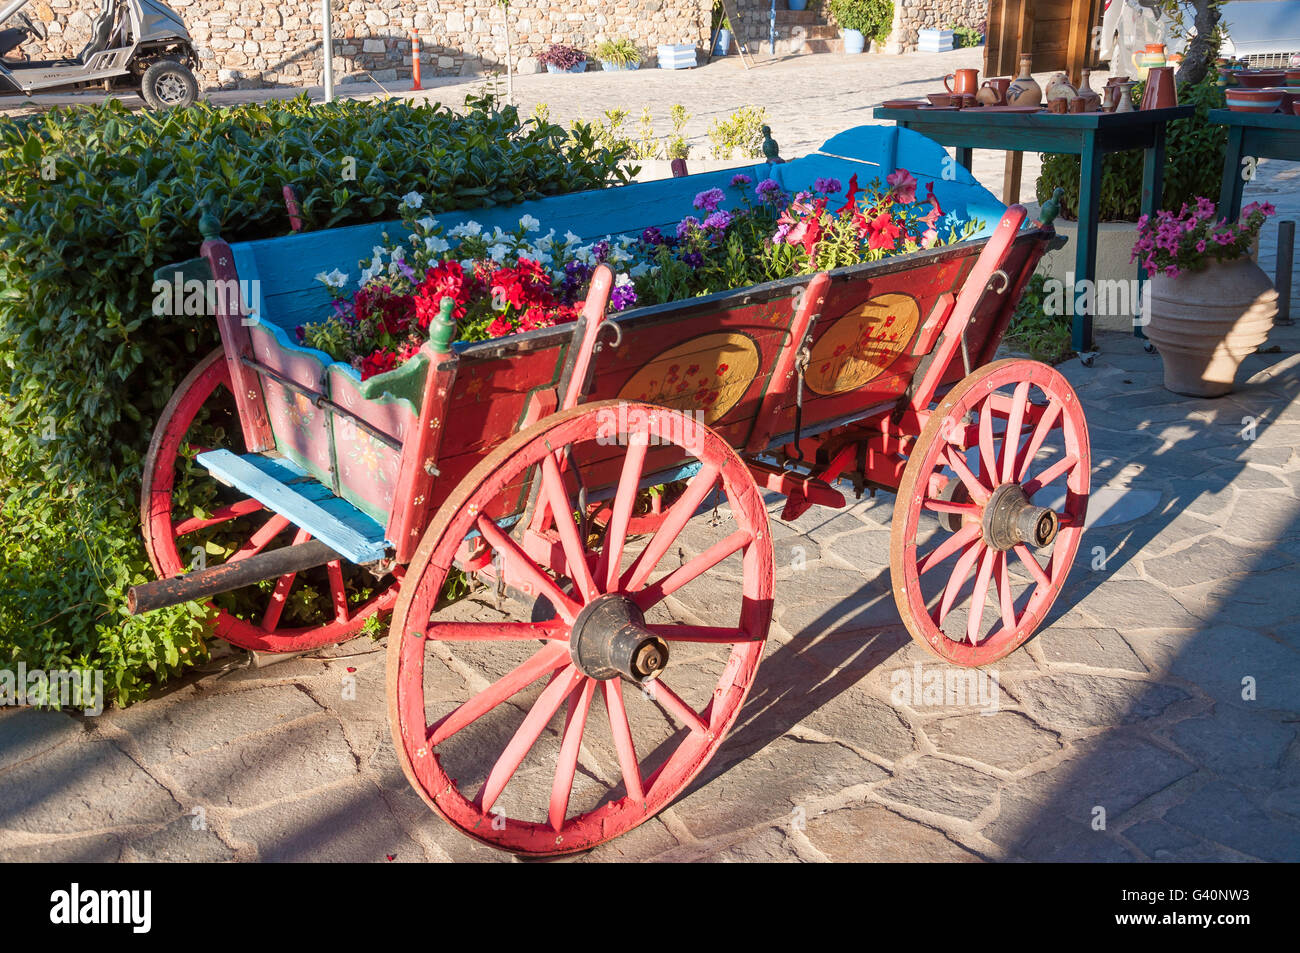 Wooden wagon with flowers in hillside village of Zia, Kos (Cos), The Dodecanese, South Aegean Region, Greece - Stock Image